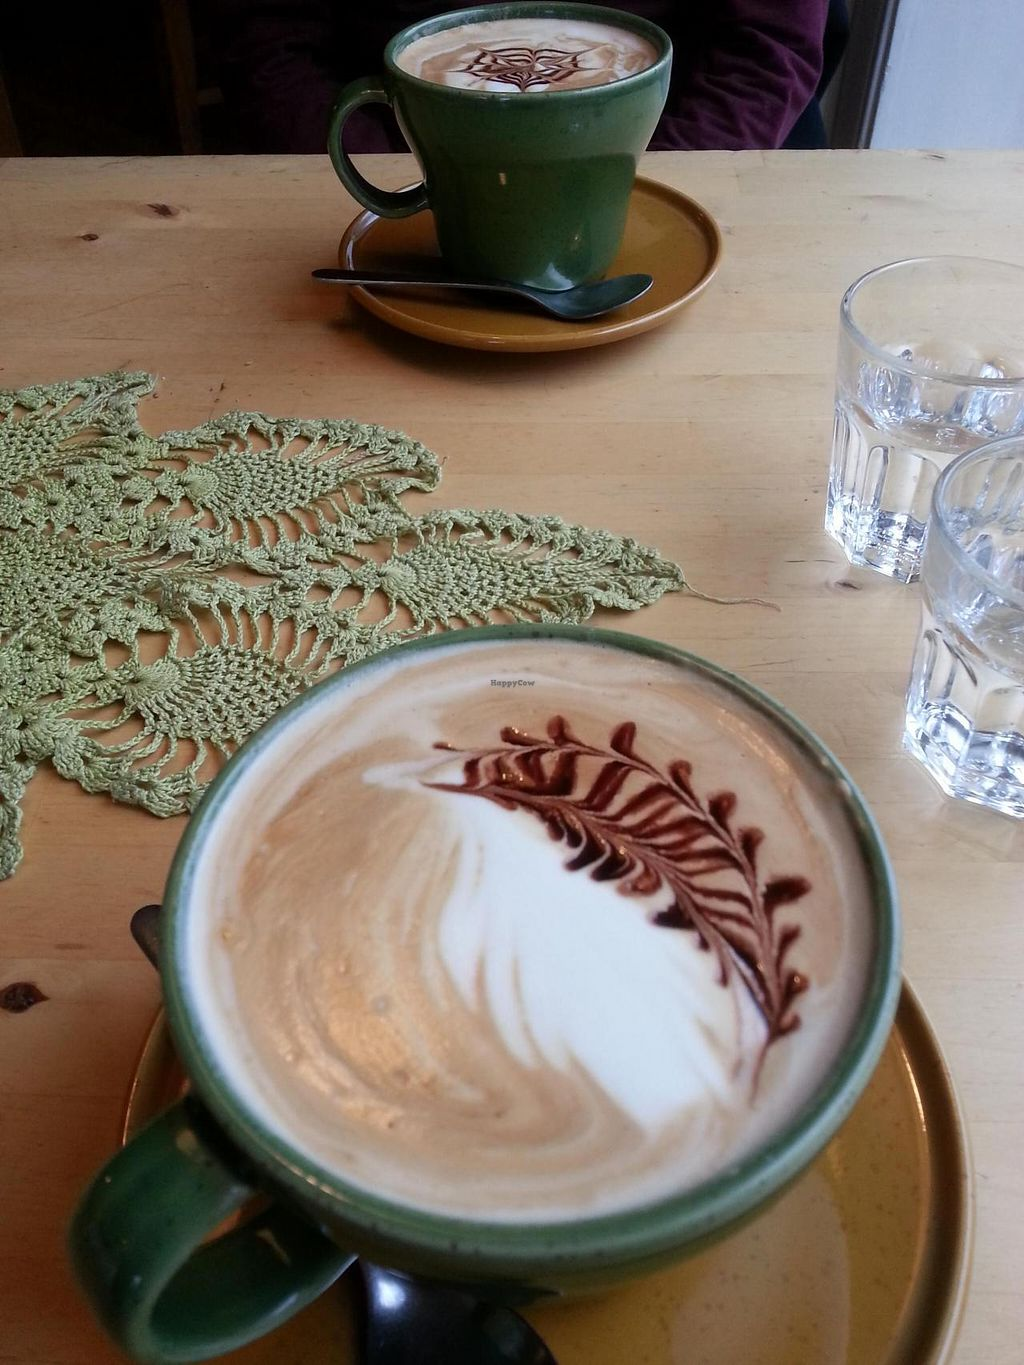 """Photo of C is for Cookie  by <a href=""""/members/profile/Nikki1801"""">Nikki1801</a> <br/>Decent coffee!!! <br/> June 4, 2014  - <a href='/contact/abuse/image/26399/71339'>Report</a>"""